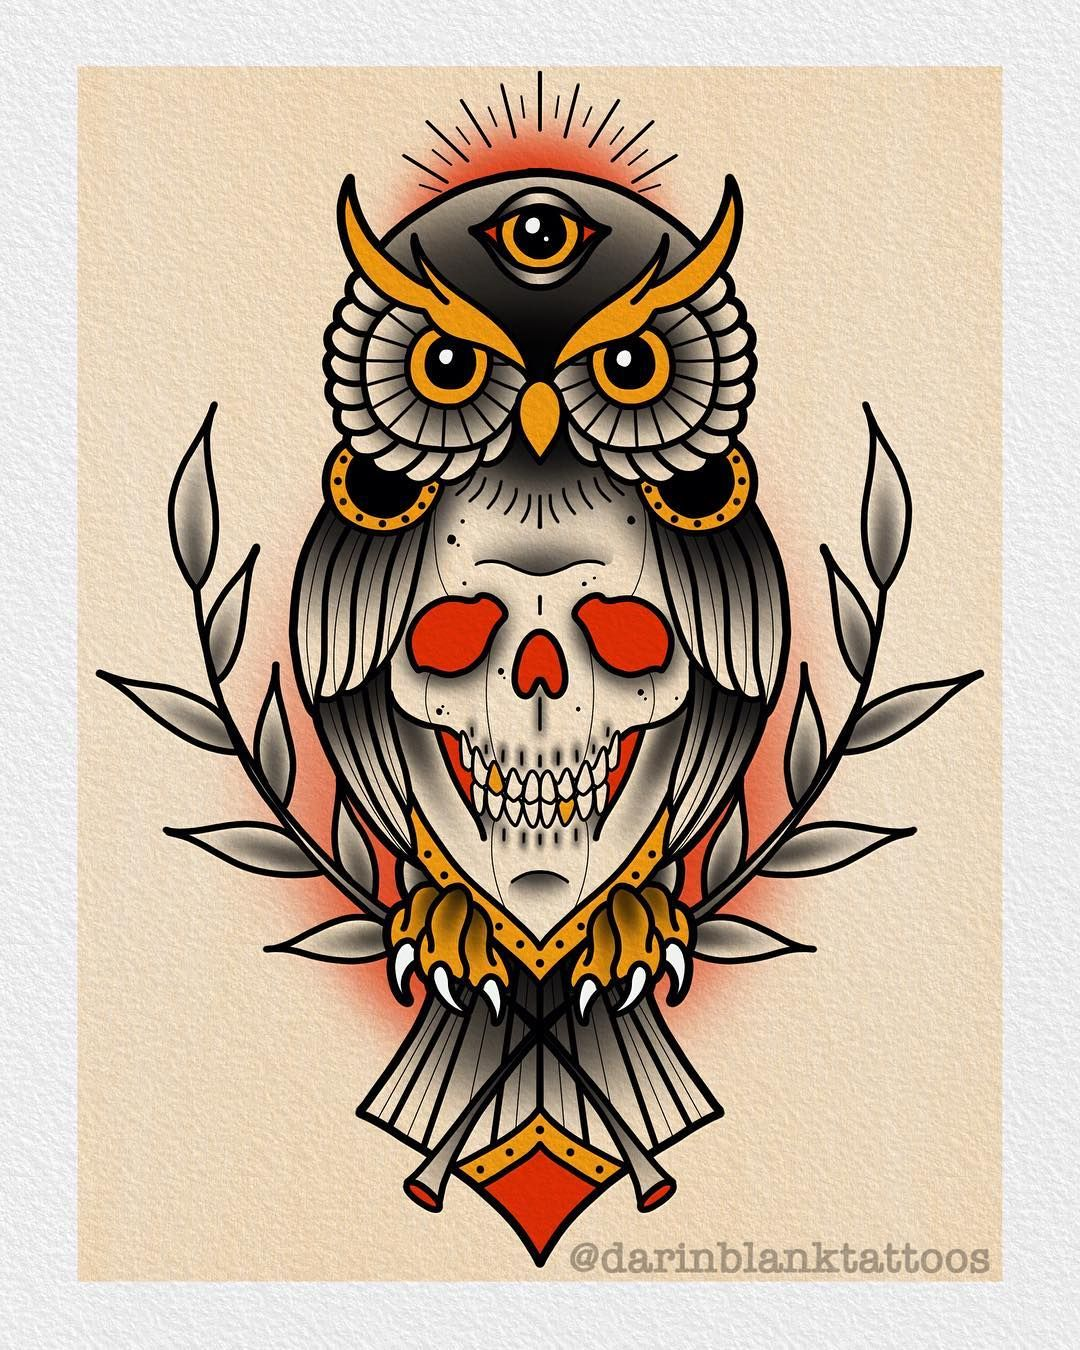 Tattoo Designs Up For Grabs: Skull Owl Design Up For Grabs! Darinblanktattoos@gmail.com